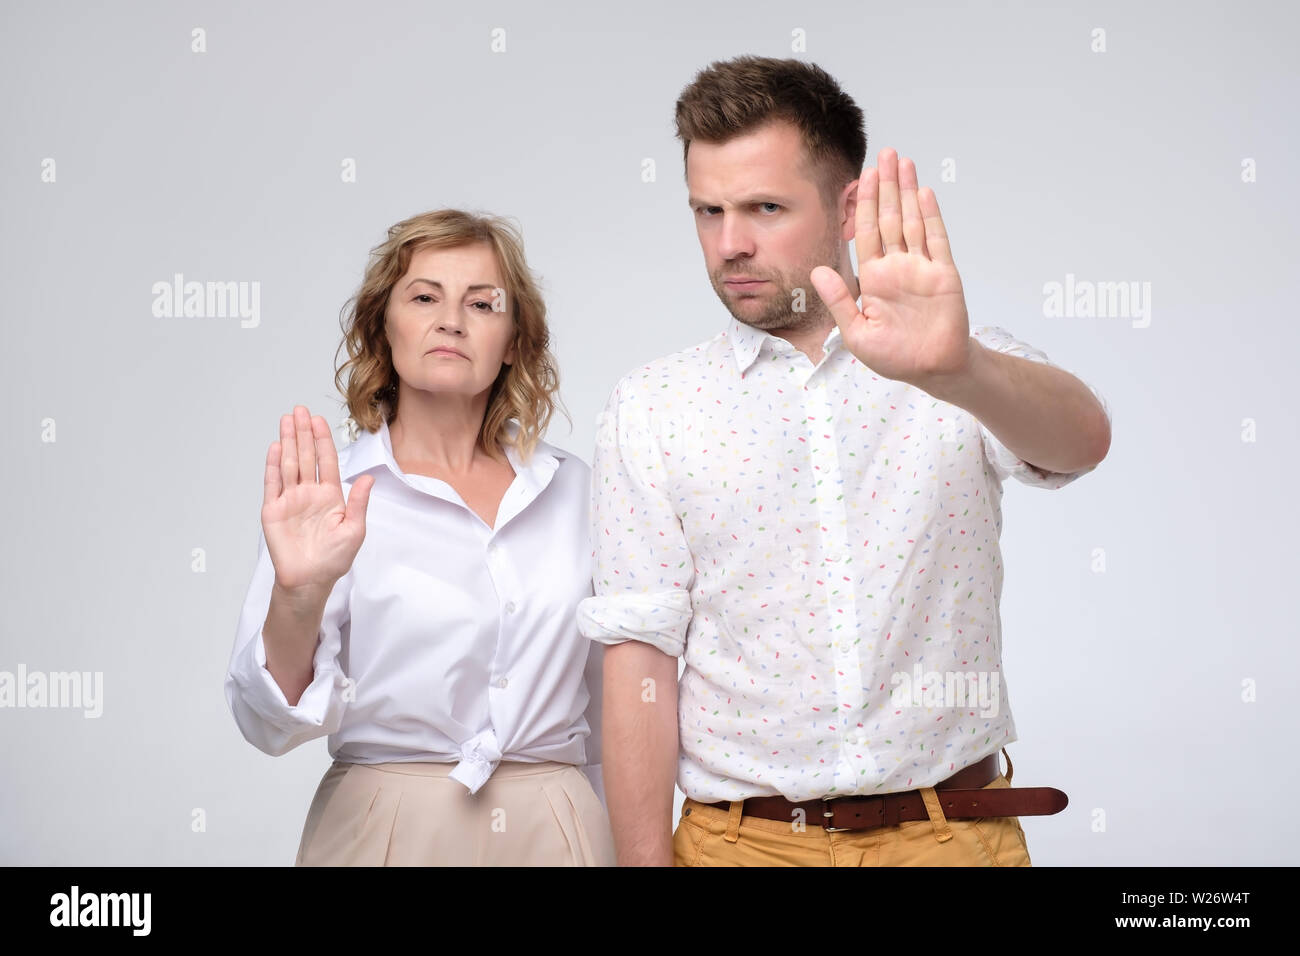 Serious confident mature man and woman making stop gesture with outstretched arms, showing their disagreement or protest. We can not allow you to do i - Stock Image